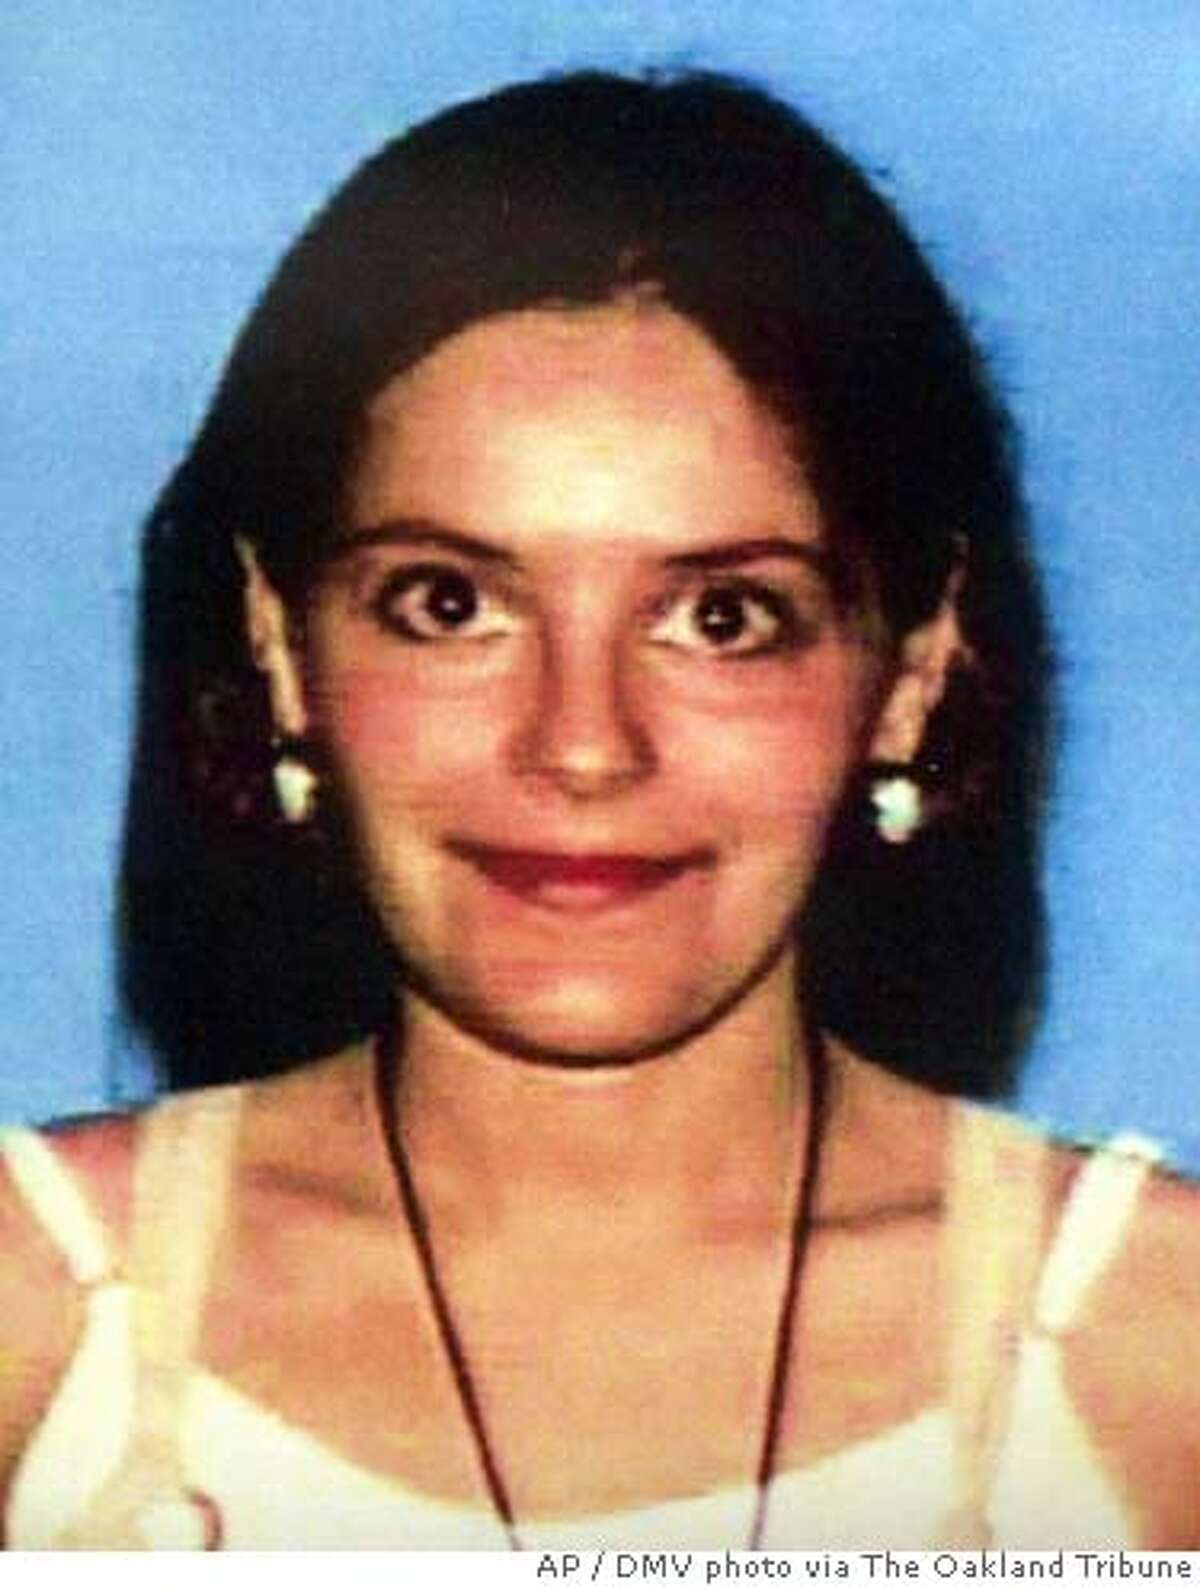 In this 1999 California DMV photo, Nina Reiser, who has been missing since Sept. 3, 2006, is shown On Tuesday, Oct. 10, 2006, Oakland, Calif., Deputy Chief Howard Jordan said they have charged her husband, Hans Reiser, on suspicion of murder. (AP Photo/DMV photo via The Oakland Tribune, ) LOCALS PLEASE CREDIT/MAGS OUT